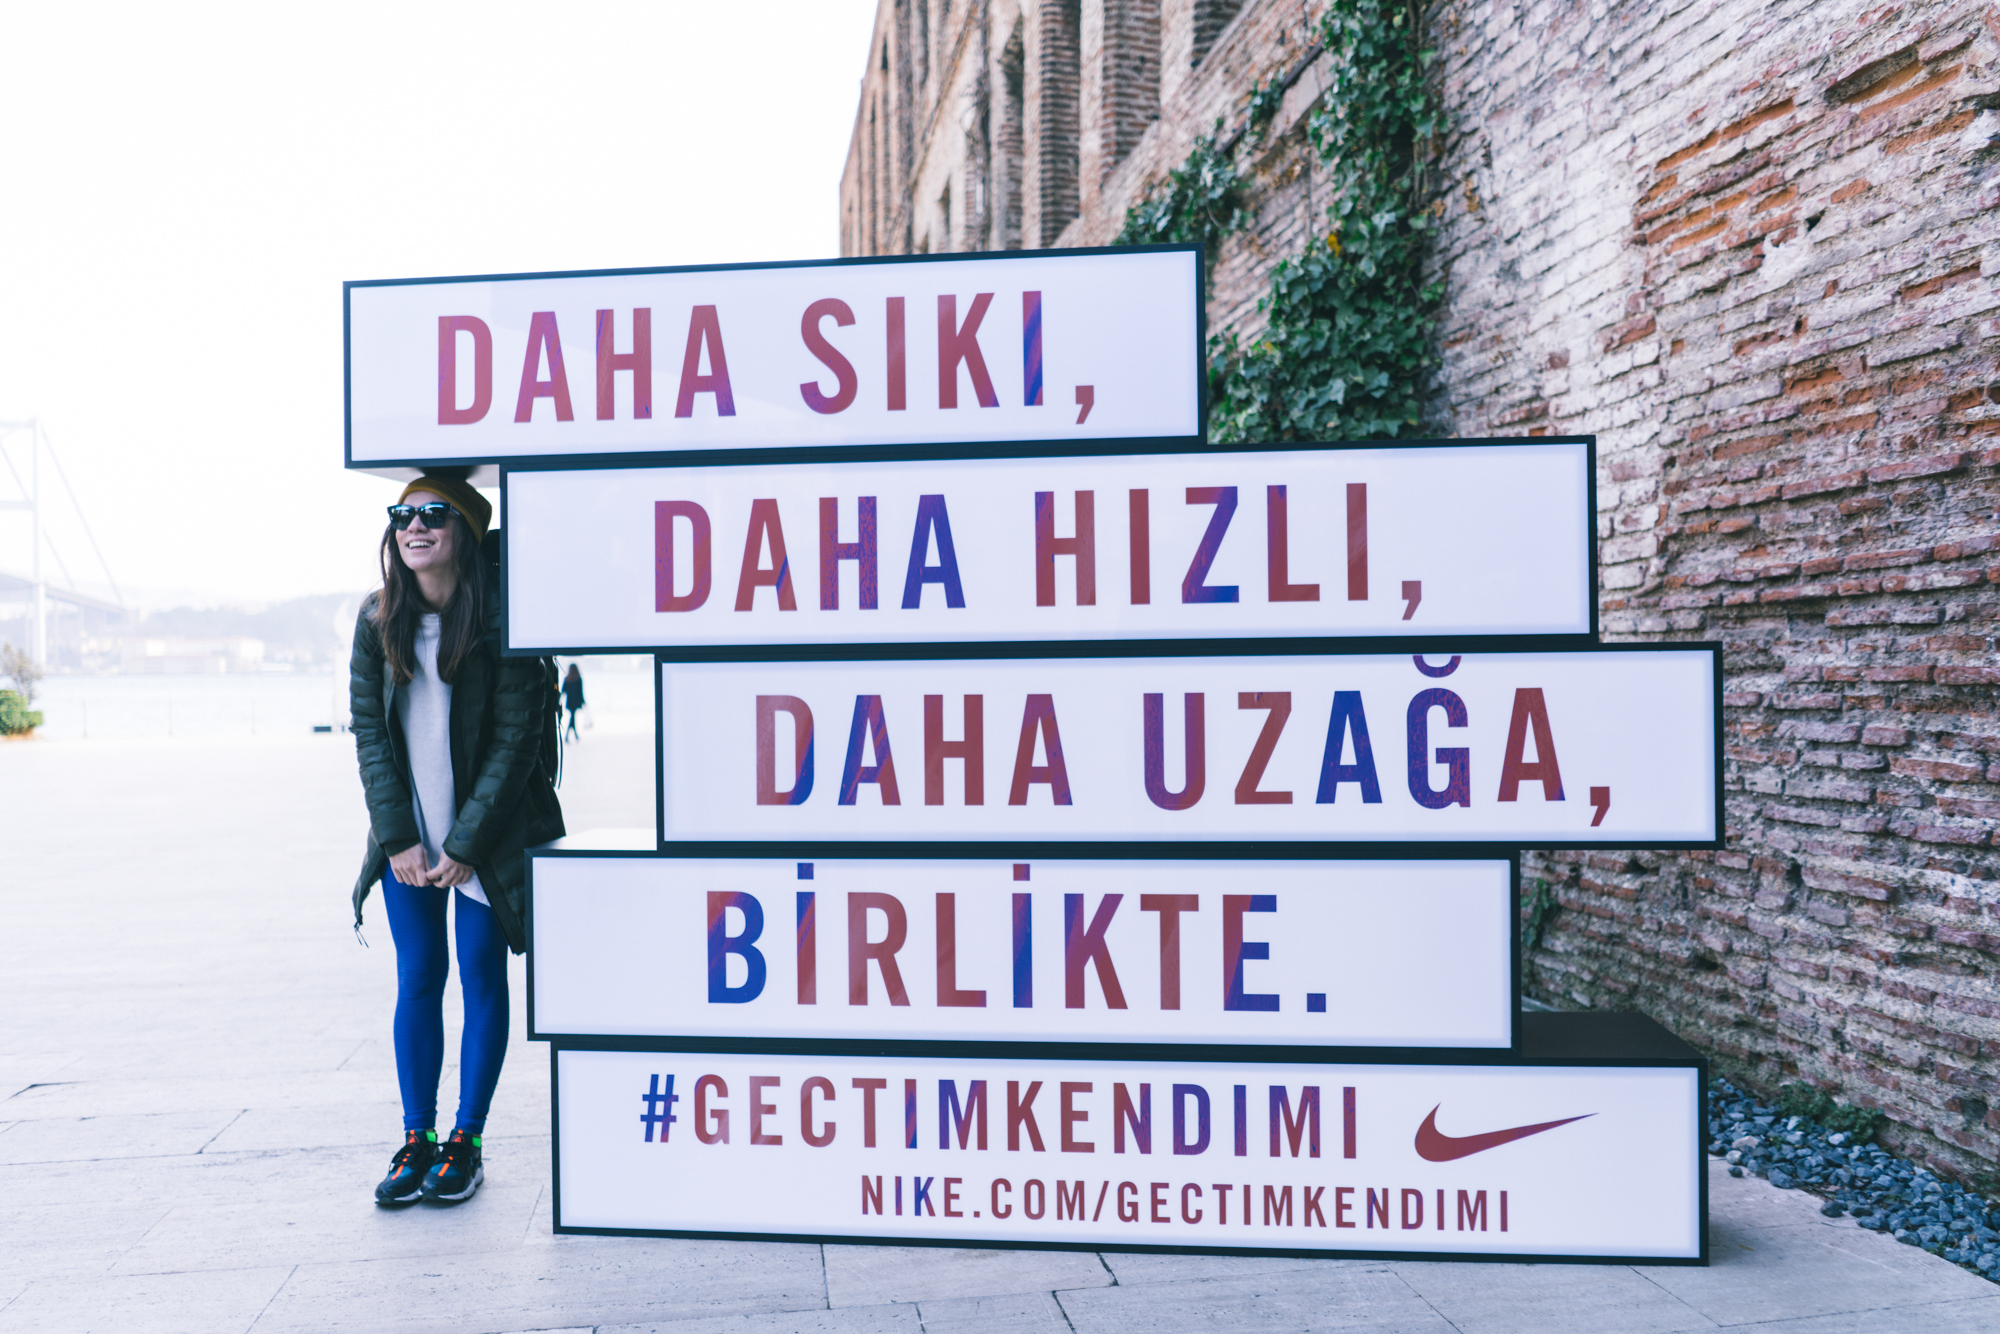 billur saatci, blogger, turkish style blogger, ntc, nike women week, geçtimkendimi, nike women week istanbul, betterforit, emma sultan, nike